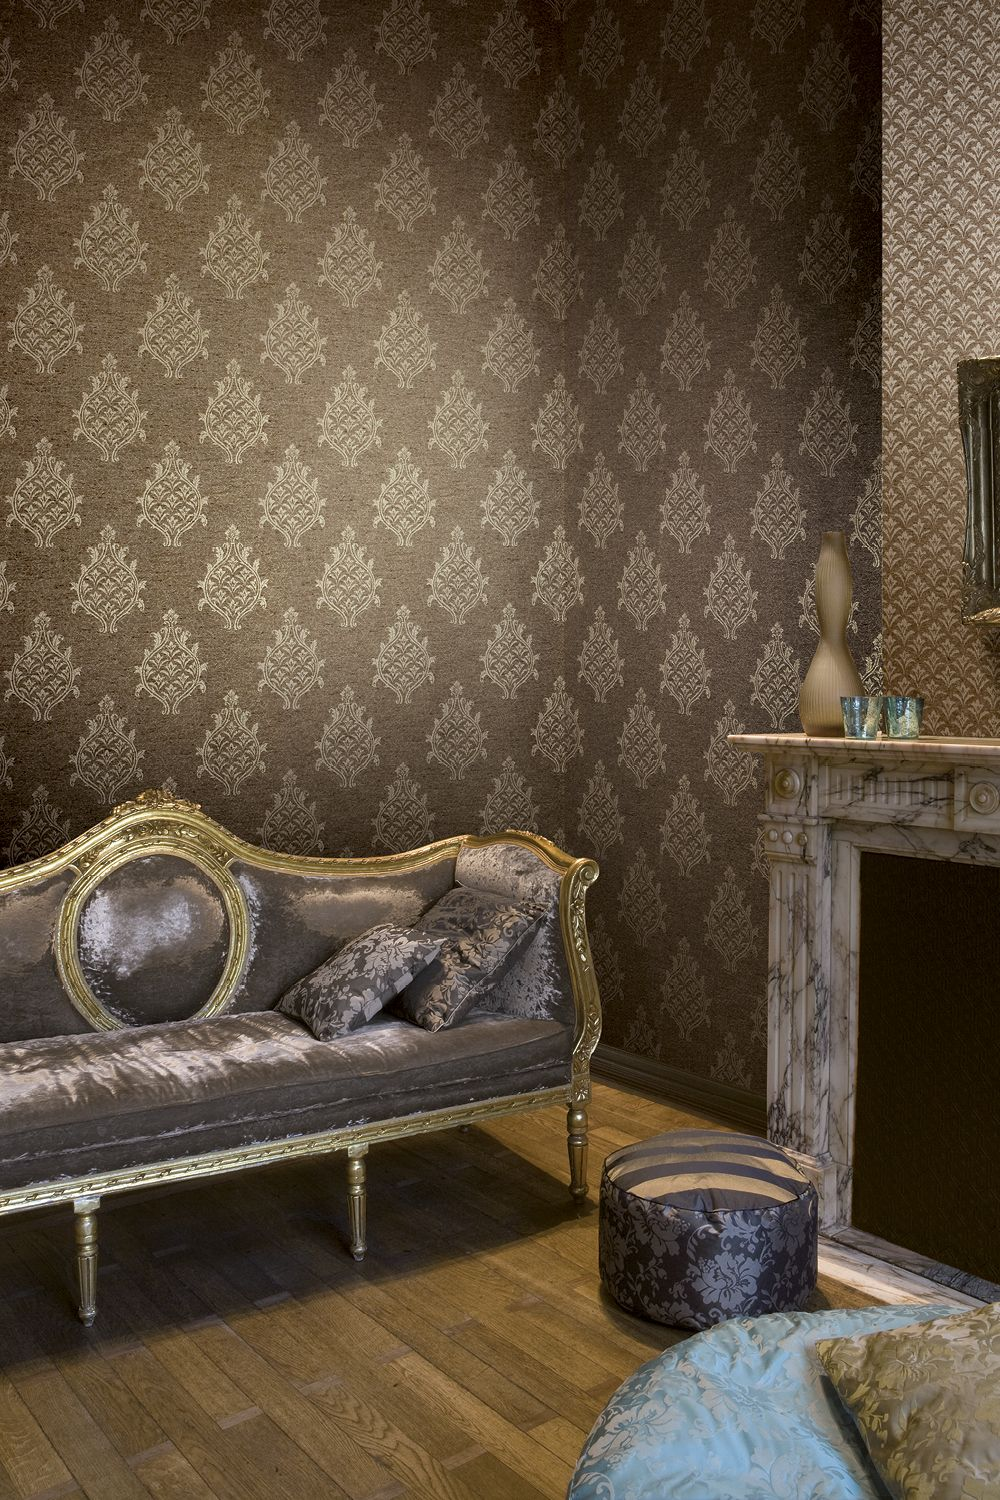 Brown Damask Wallpaper With Gold Details In 2020 Brown And